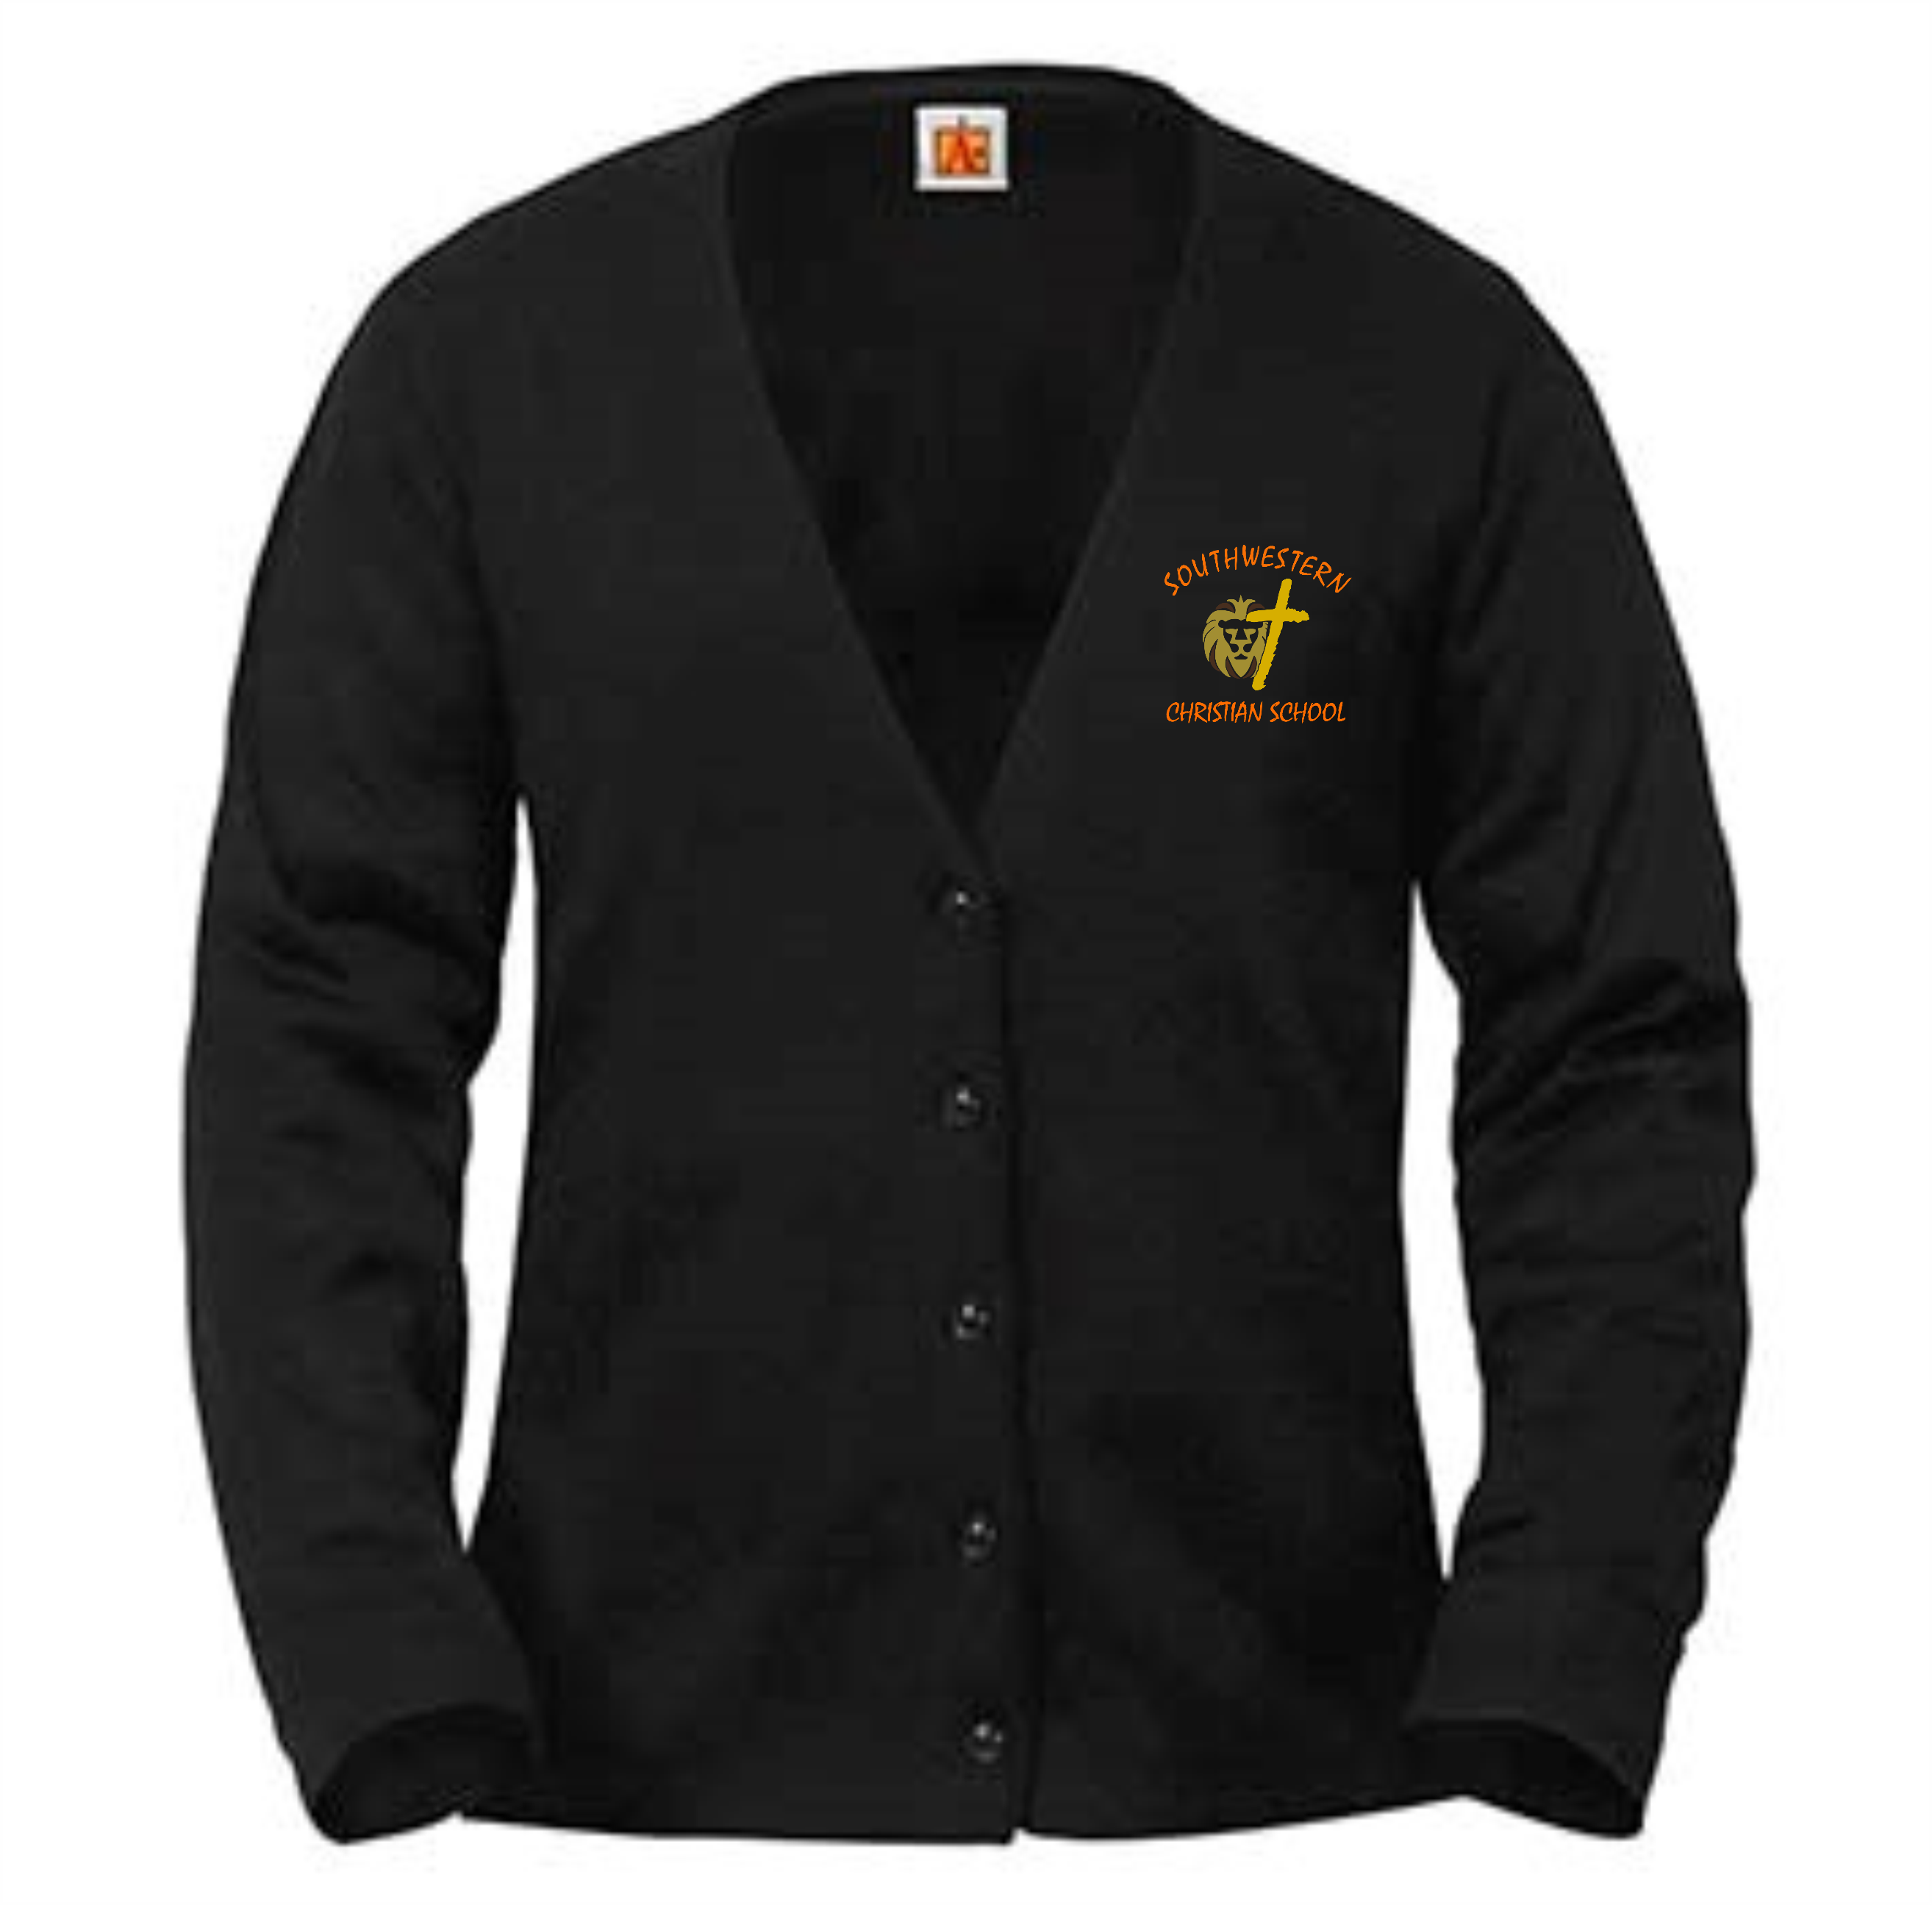 A+ Girl's Cardigan - SWCS (Color: Black, Size: YXS - Size 4/5)